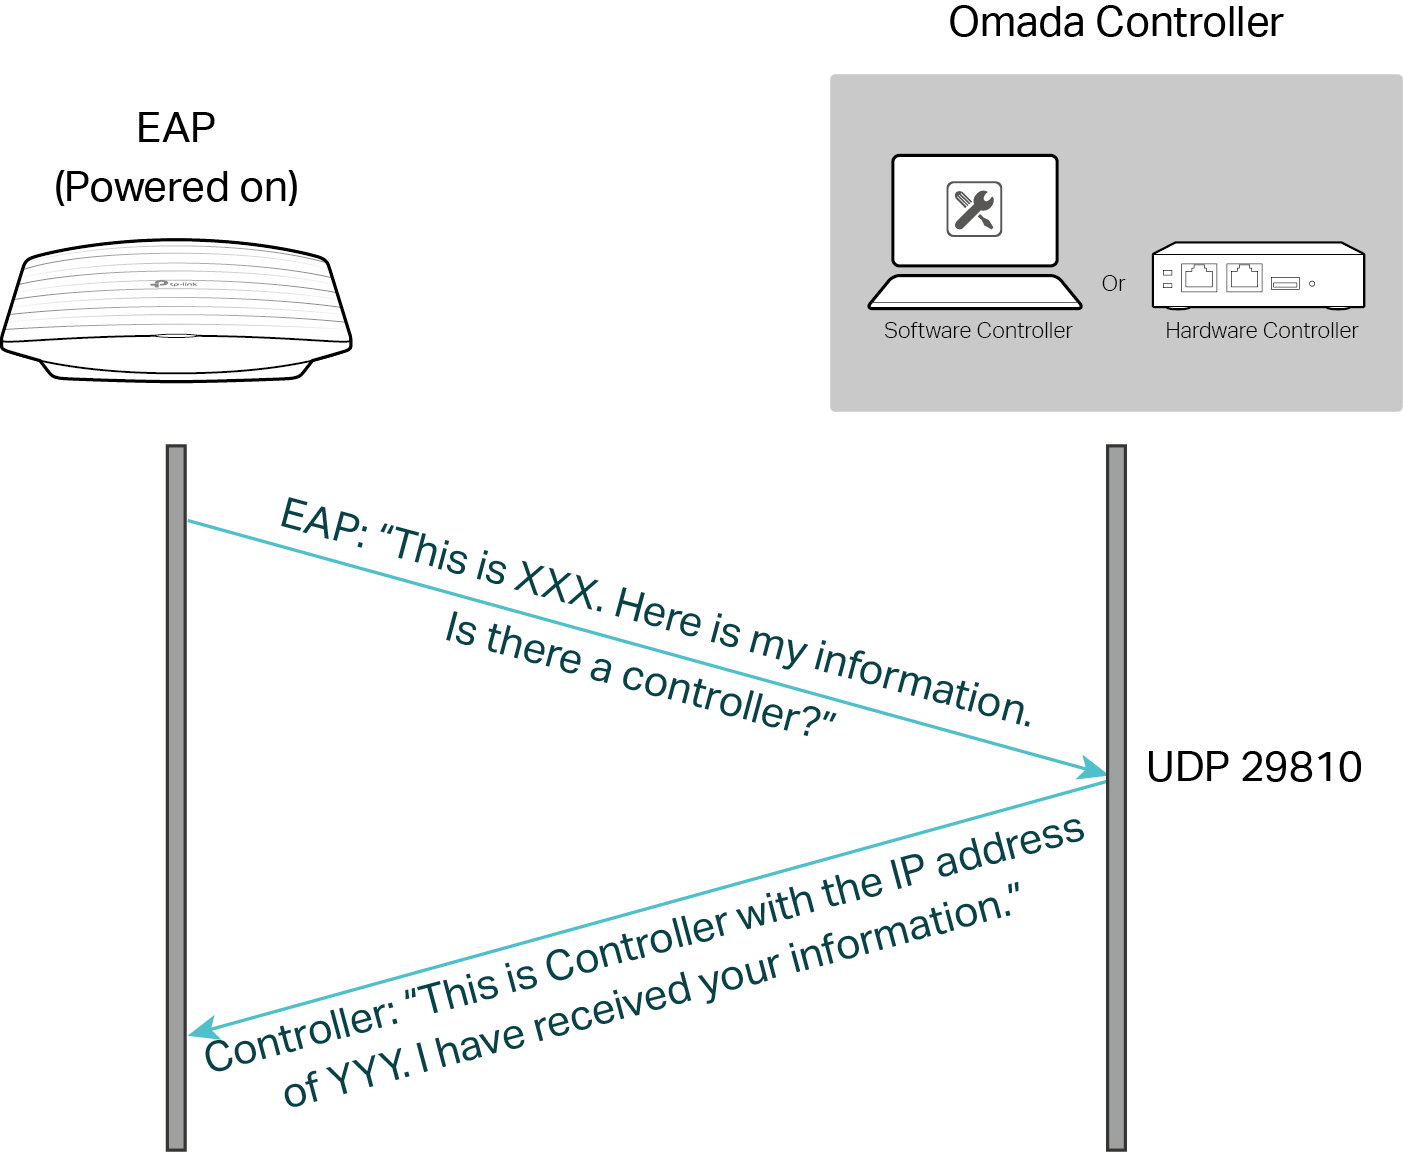 The Omada controller discovers an EAP.